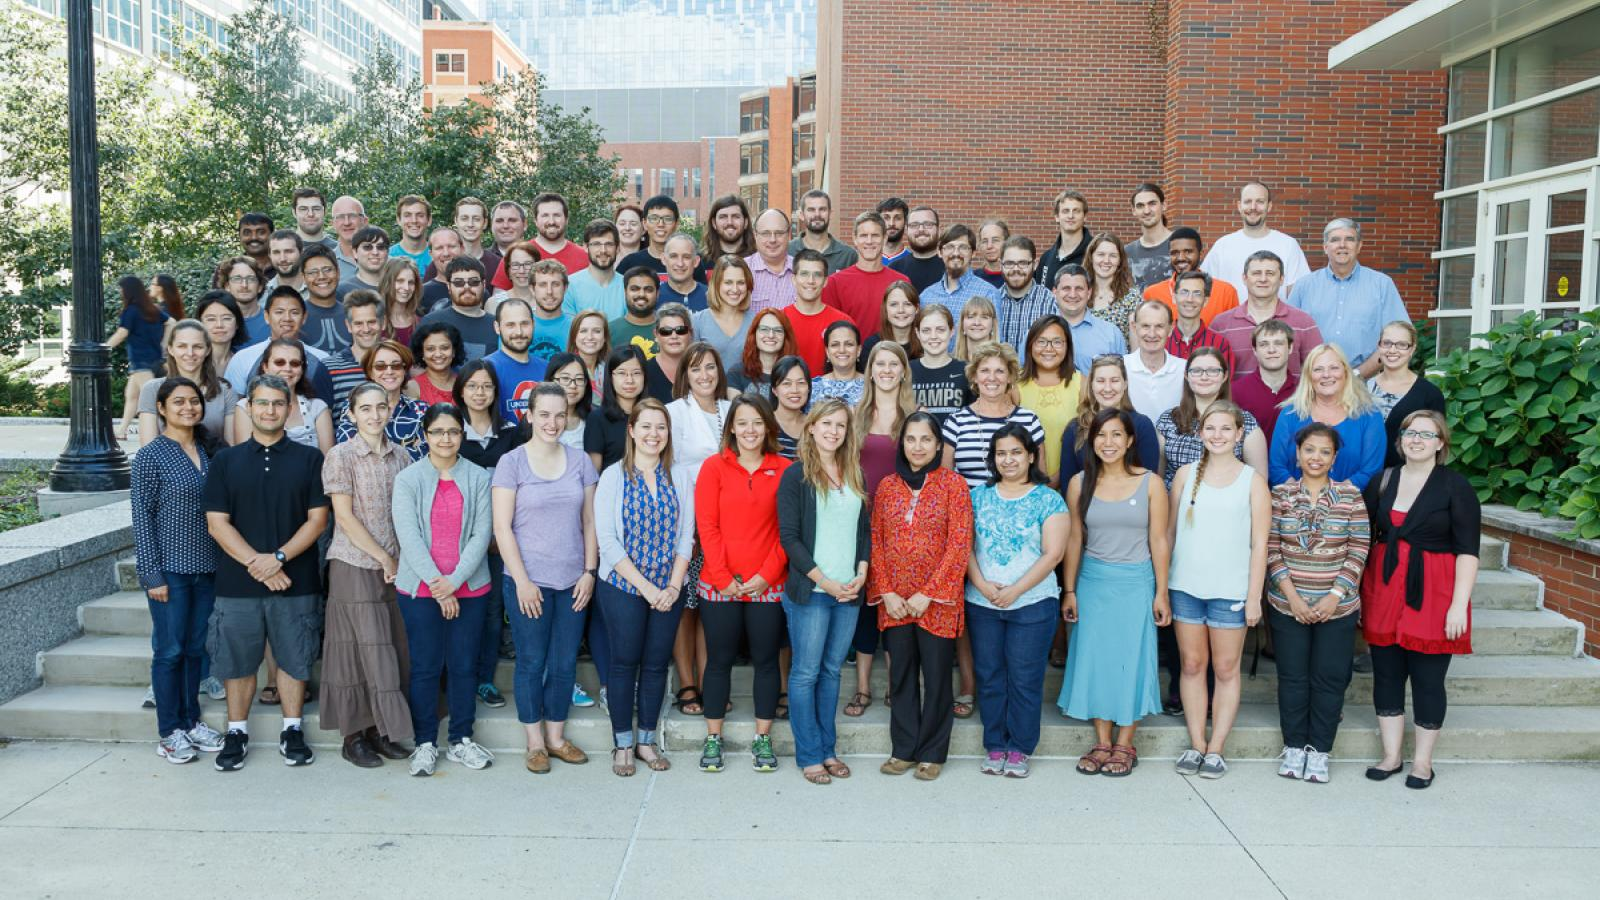 Microbiology Group Photo, August 2015